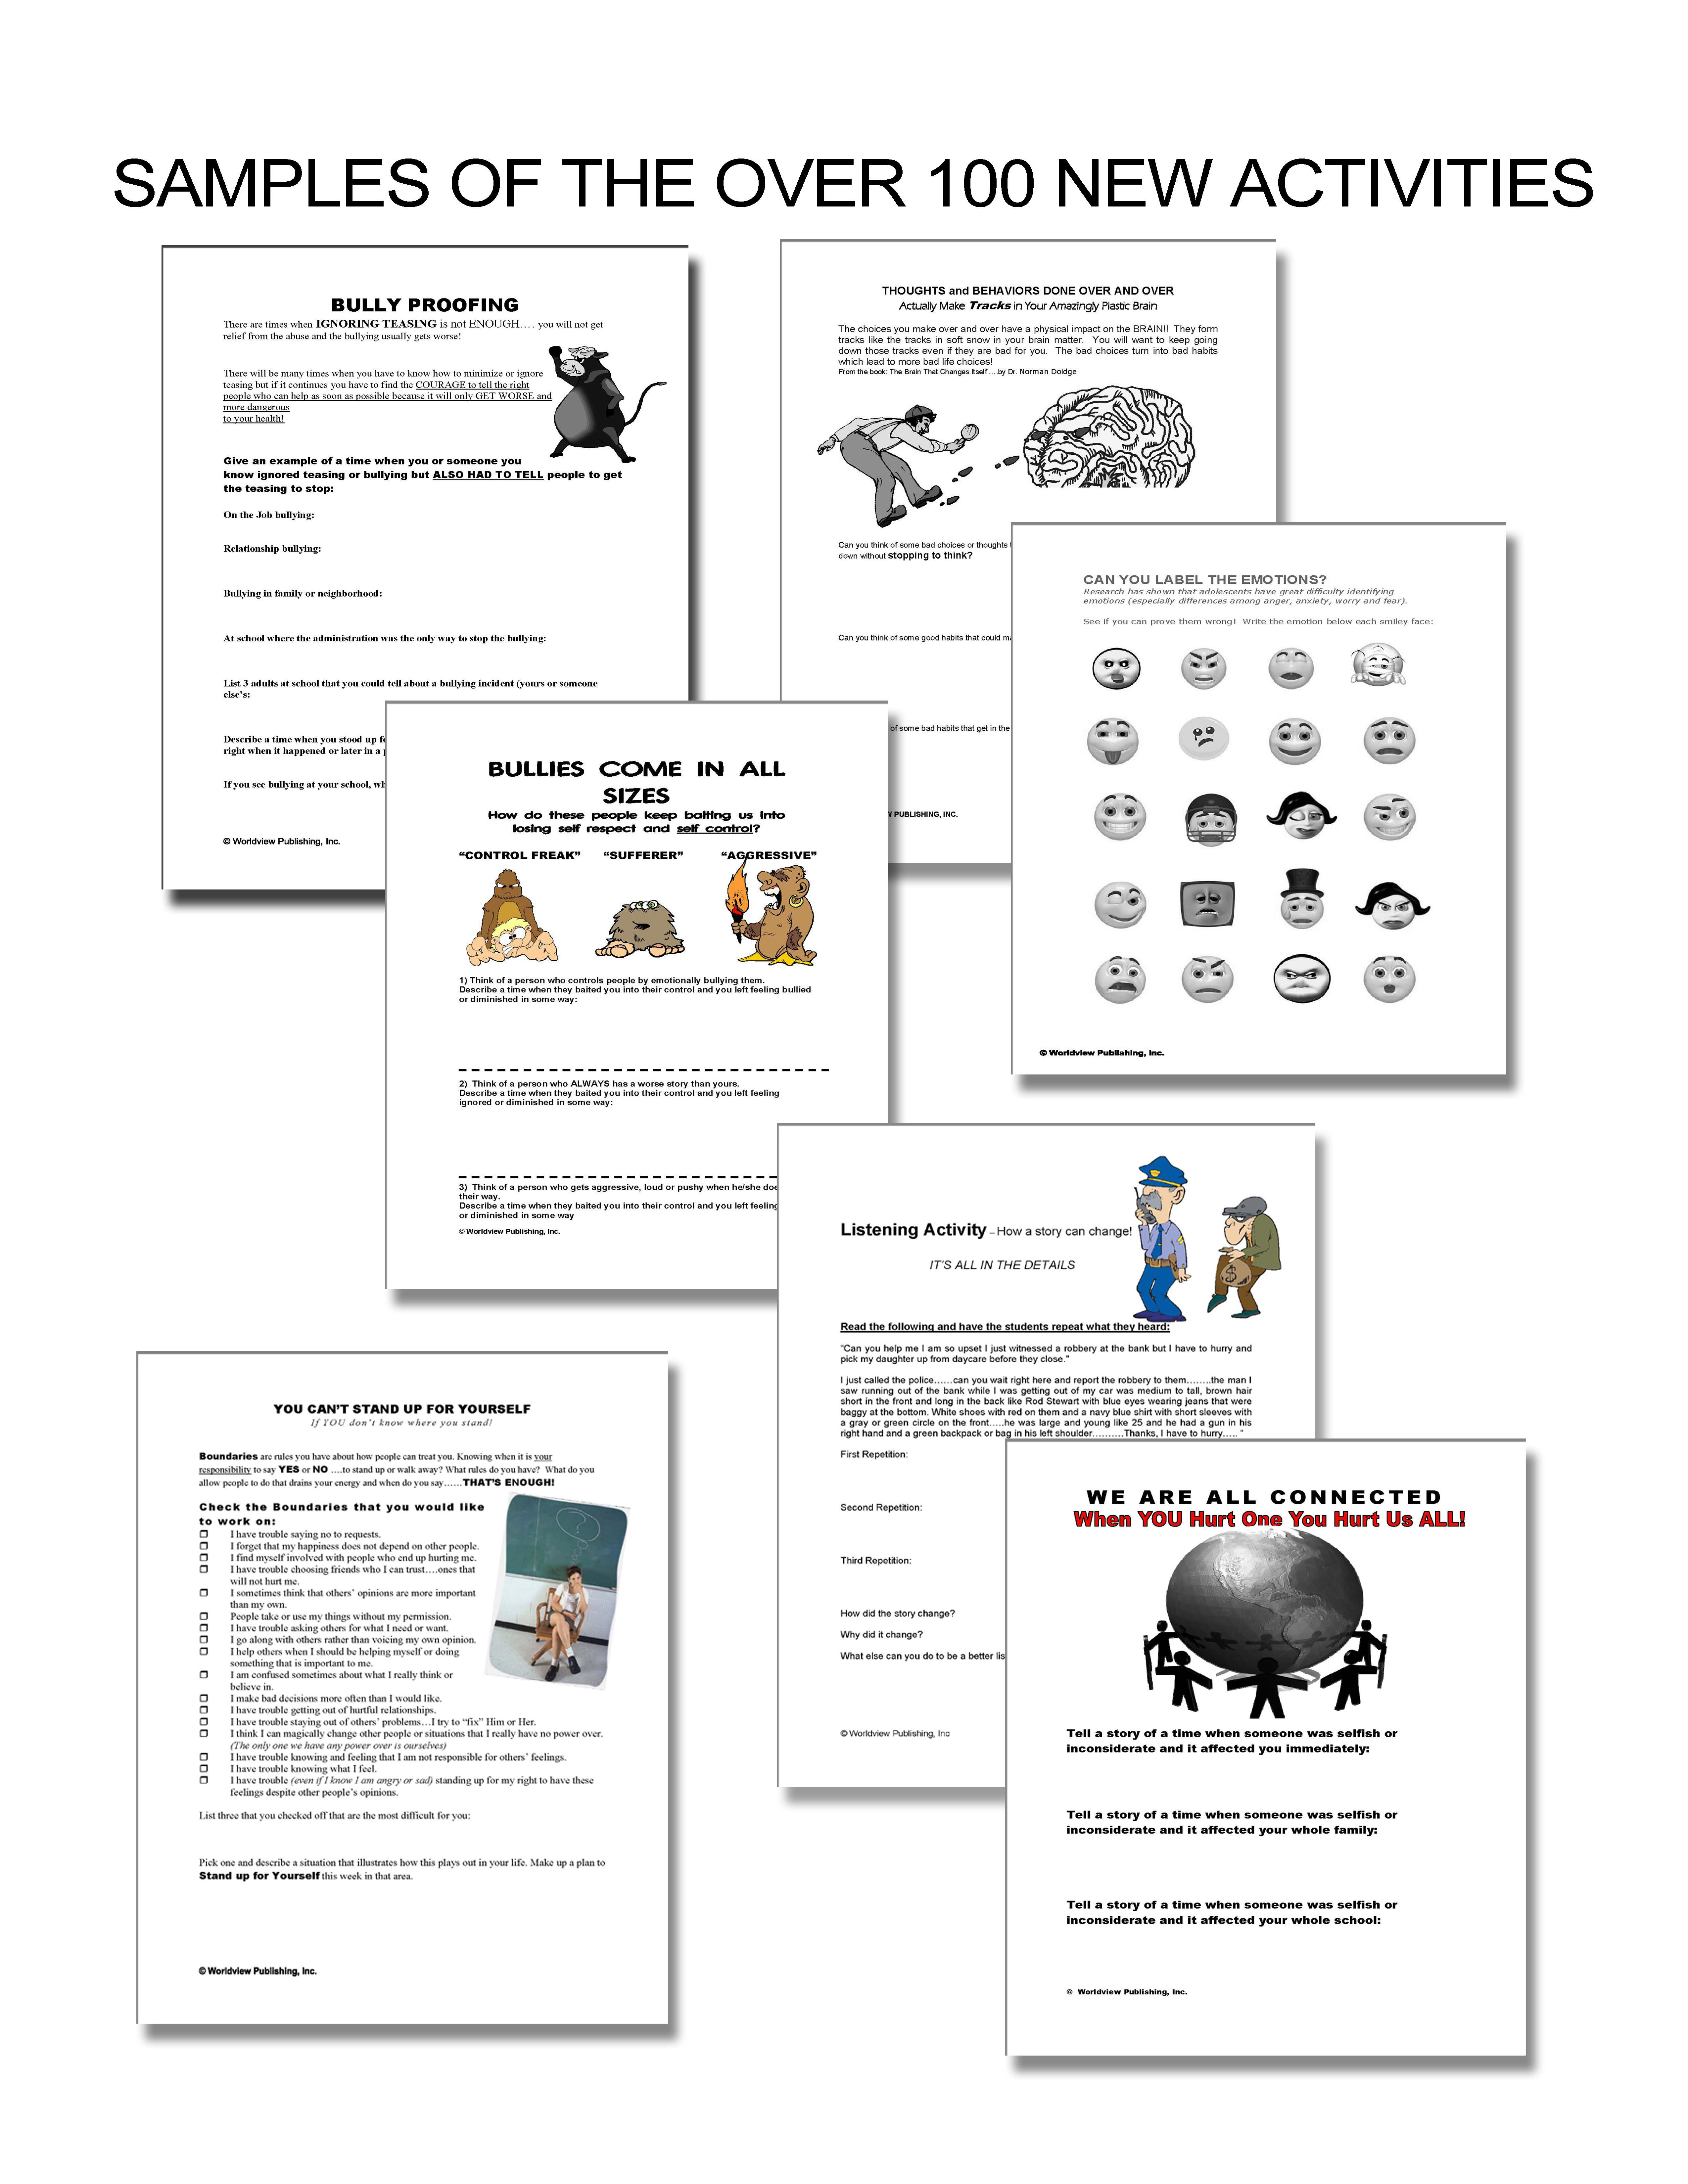 worksheet Anger Management Coping Skills Worksheets worldview publishing life skills video curriculum anger management social training character education conflict resolution and parenting